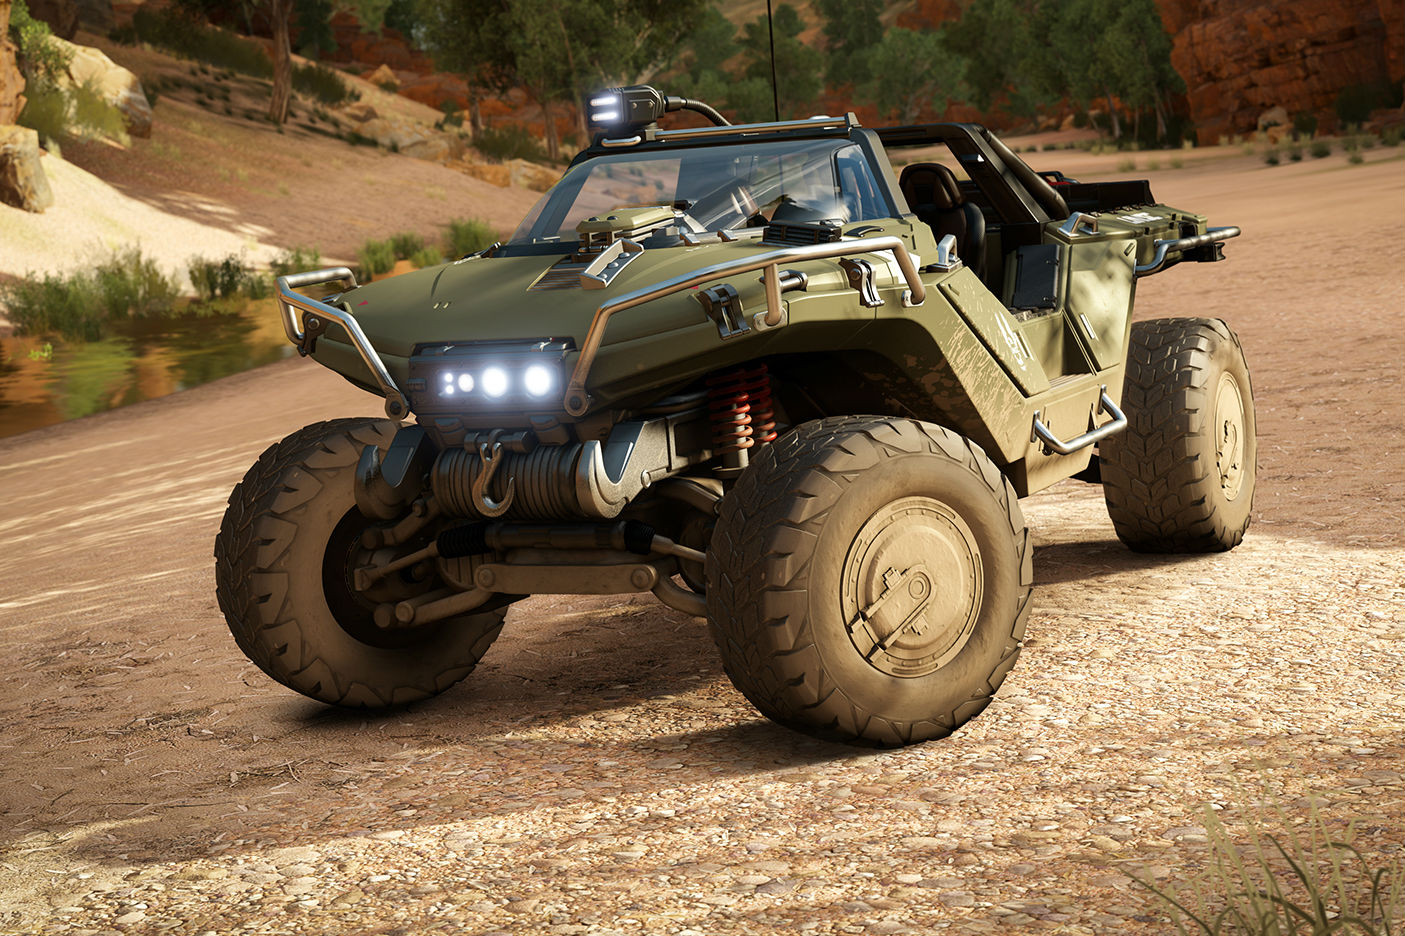 AMD, Nvidia release drivers for 'Forza Horizon 3,' which races to retail Tuesday